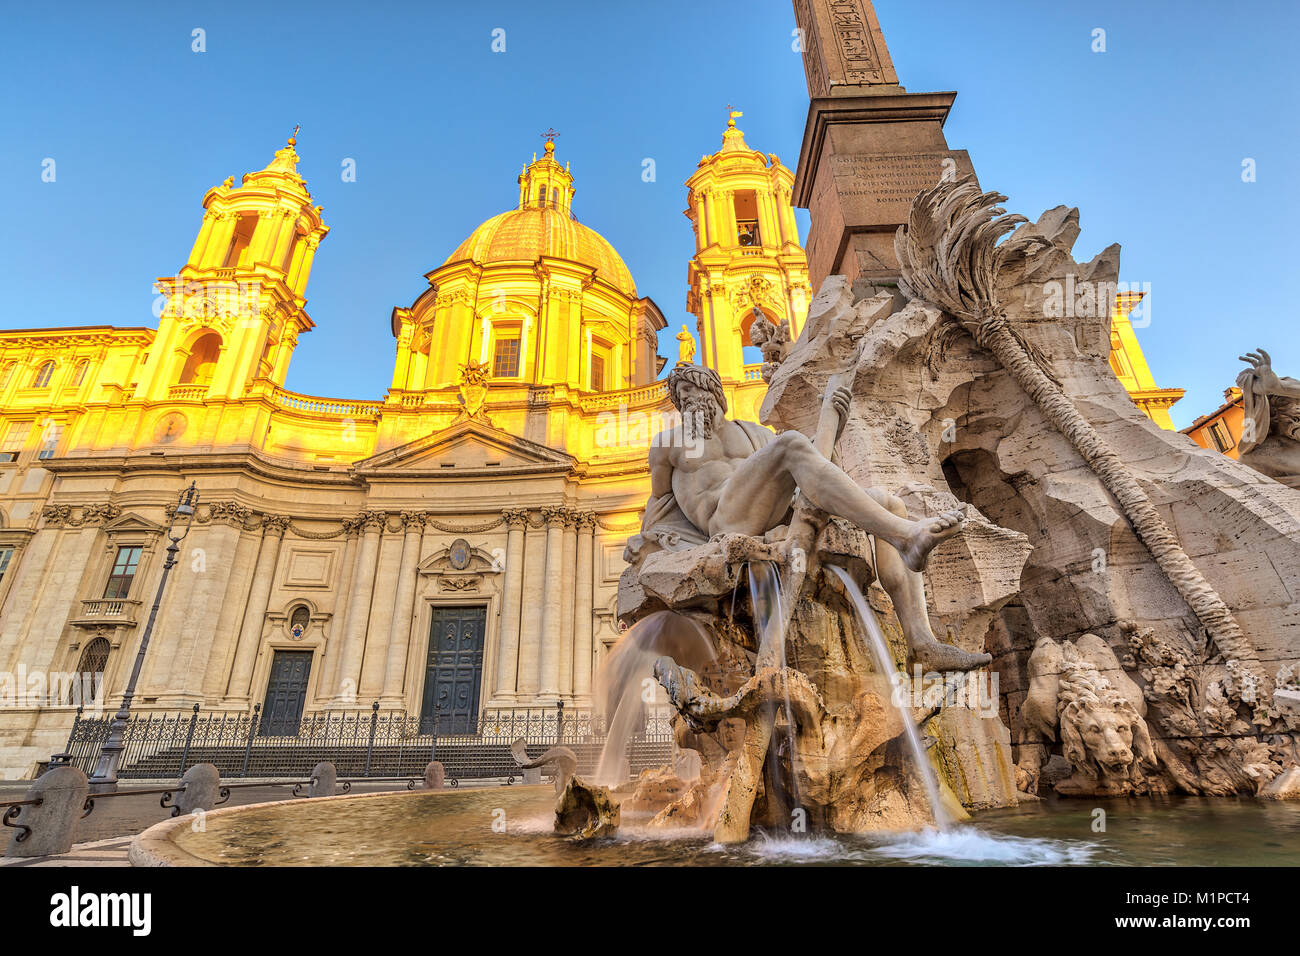 Rome Piazza Navona and Fountain of Neptune, Rome, Italy - Stock Image